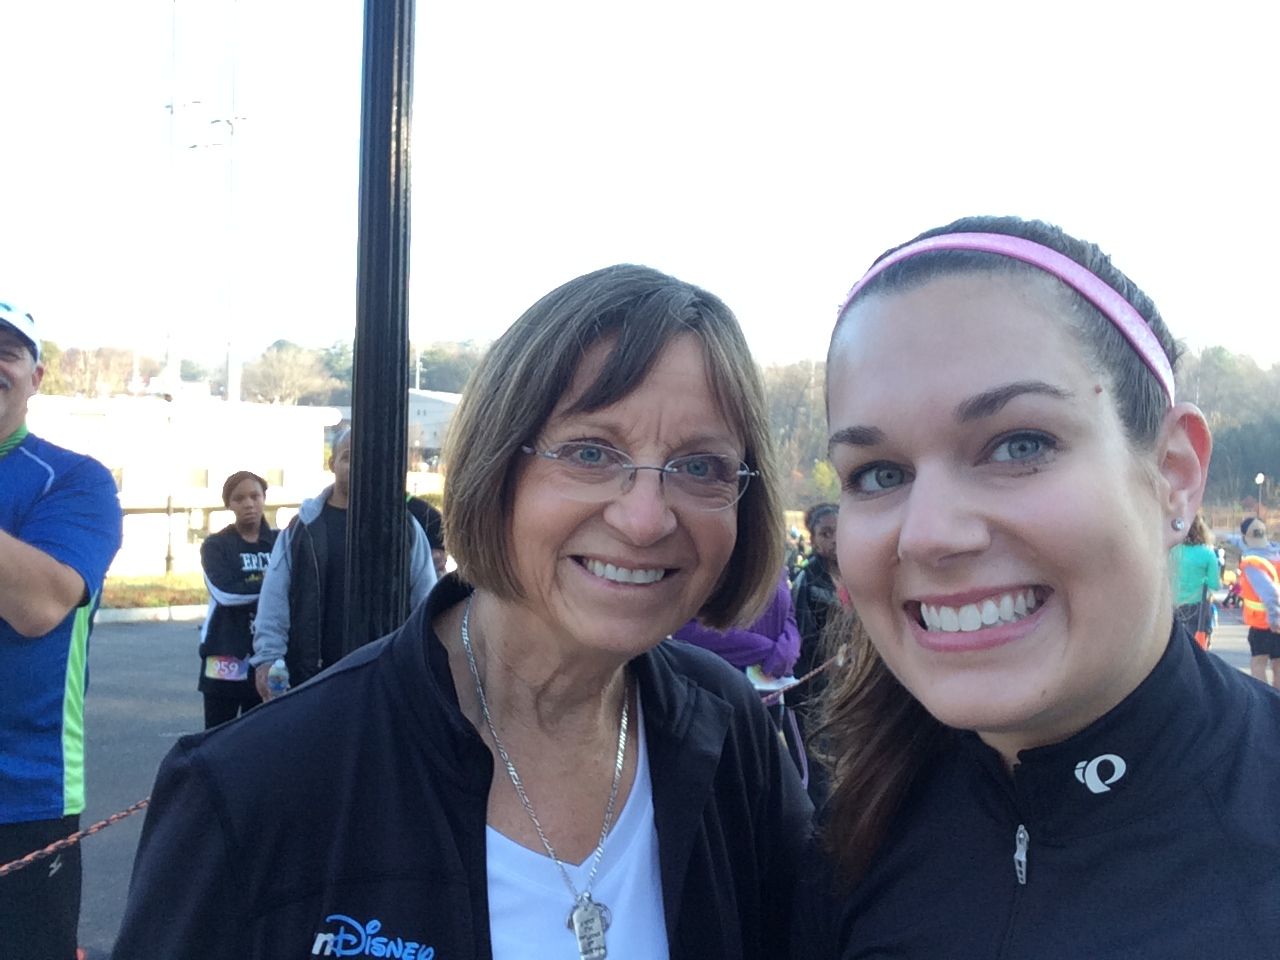 Barb Galloway congratulated me at finish line.